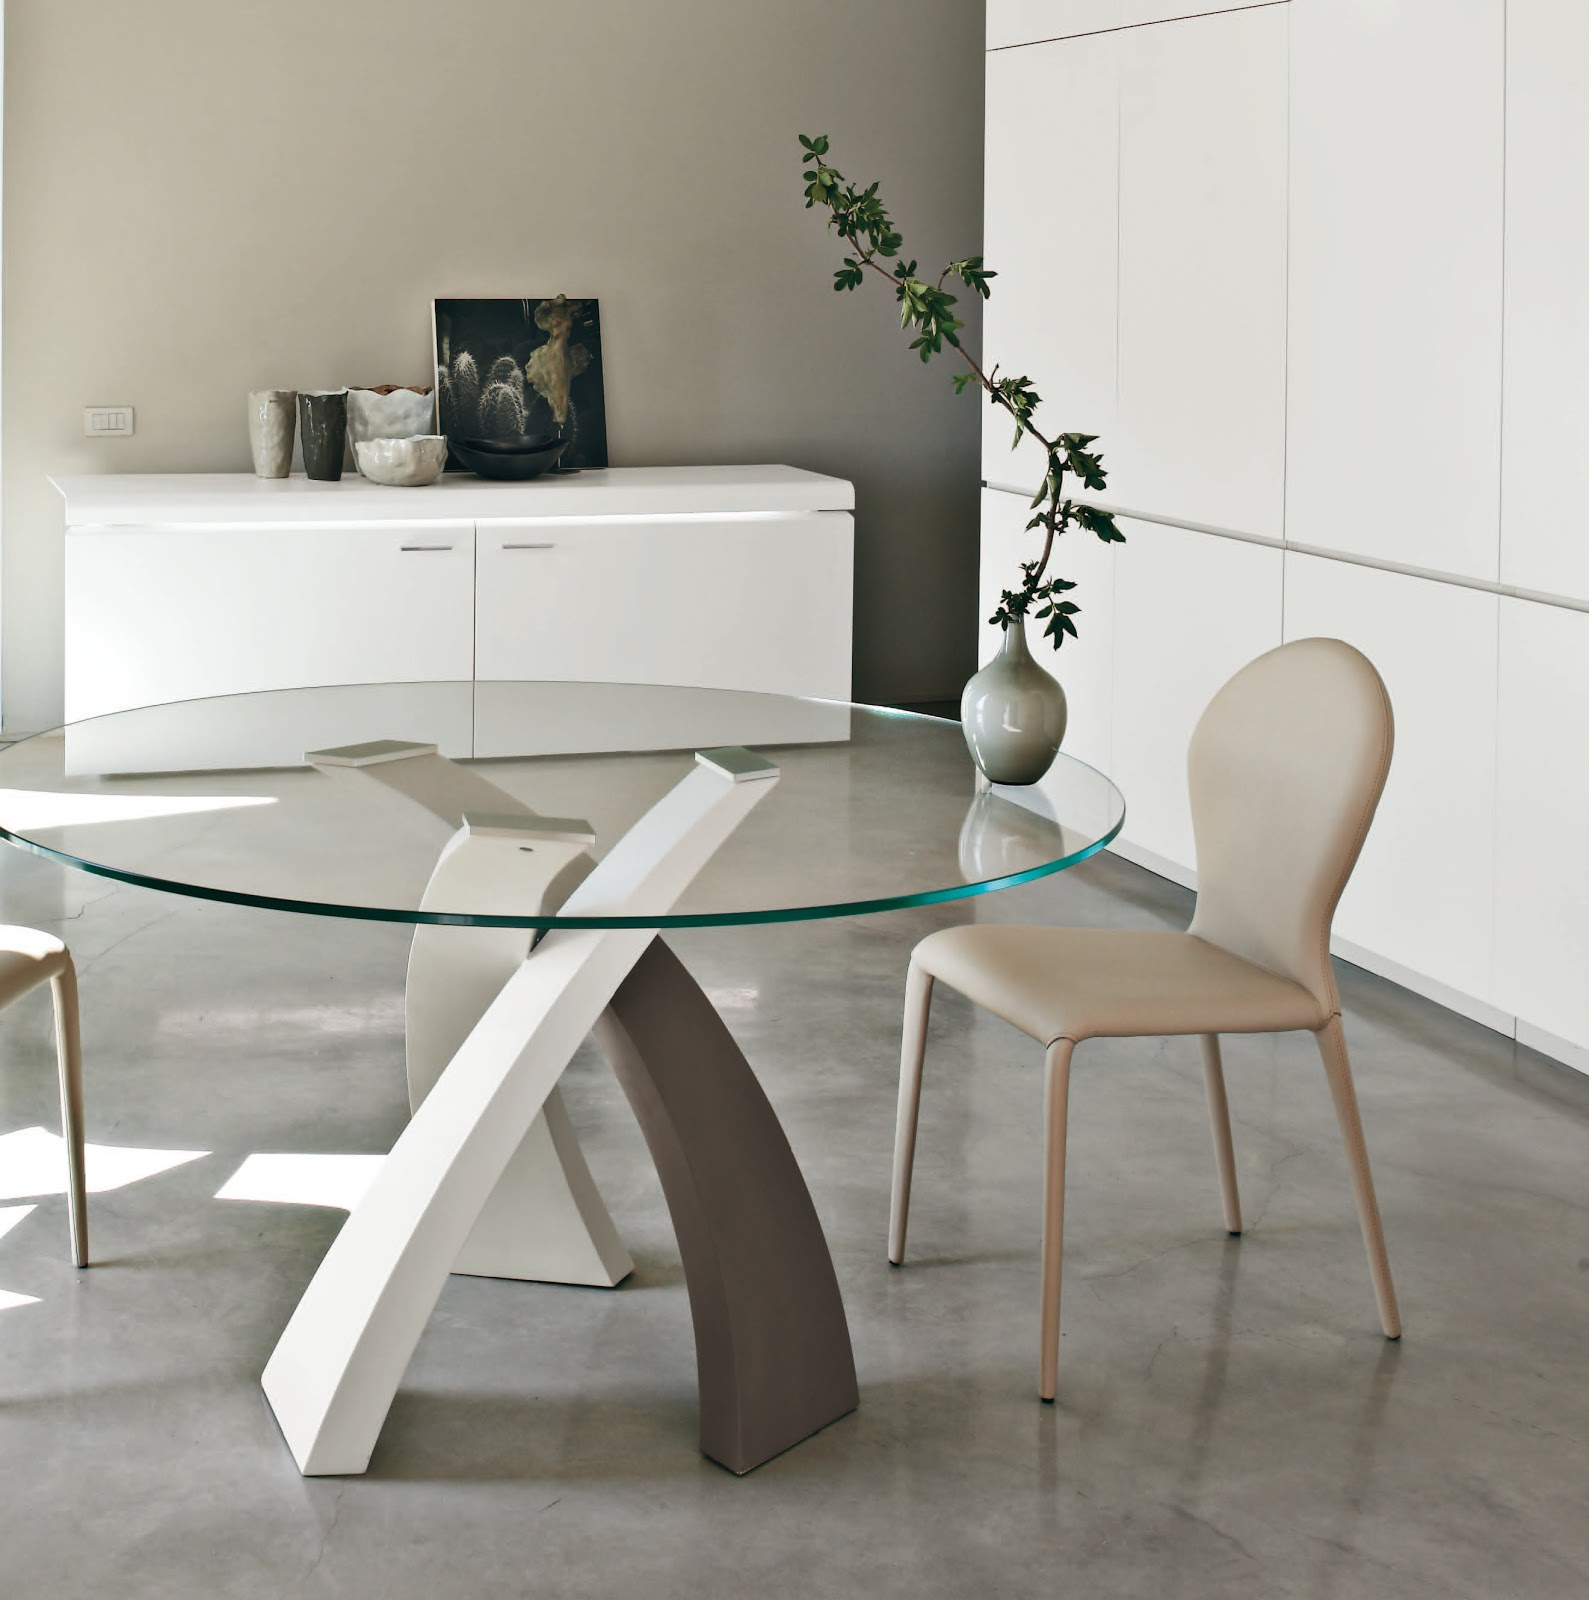 Inspiration mobilier design table ronde design - Table de cuisine ronde en verre pied central ...